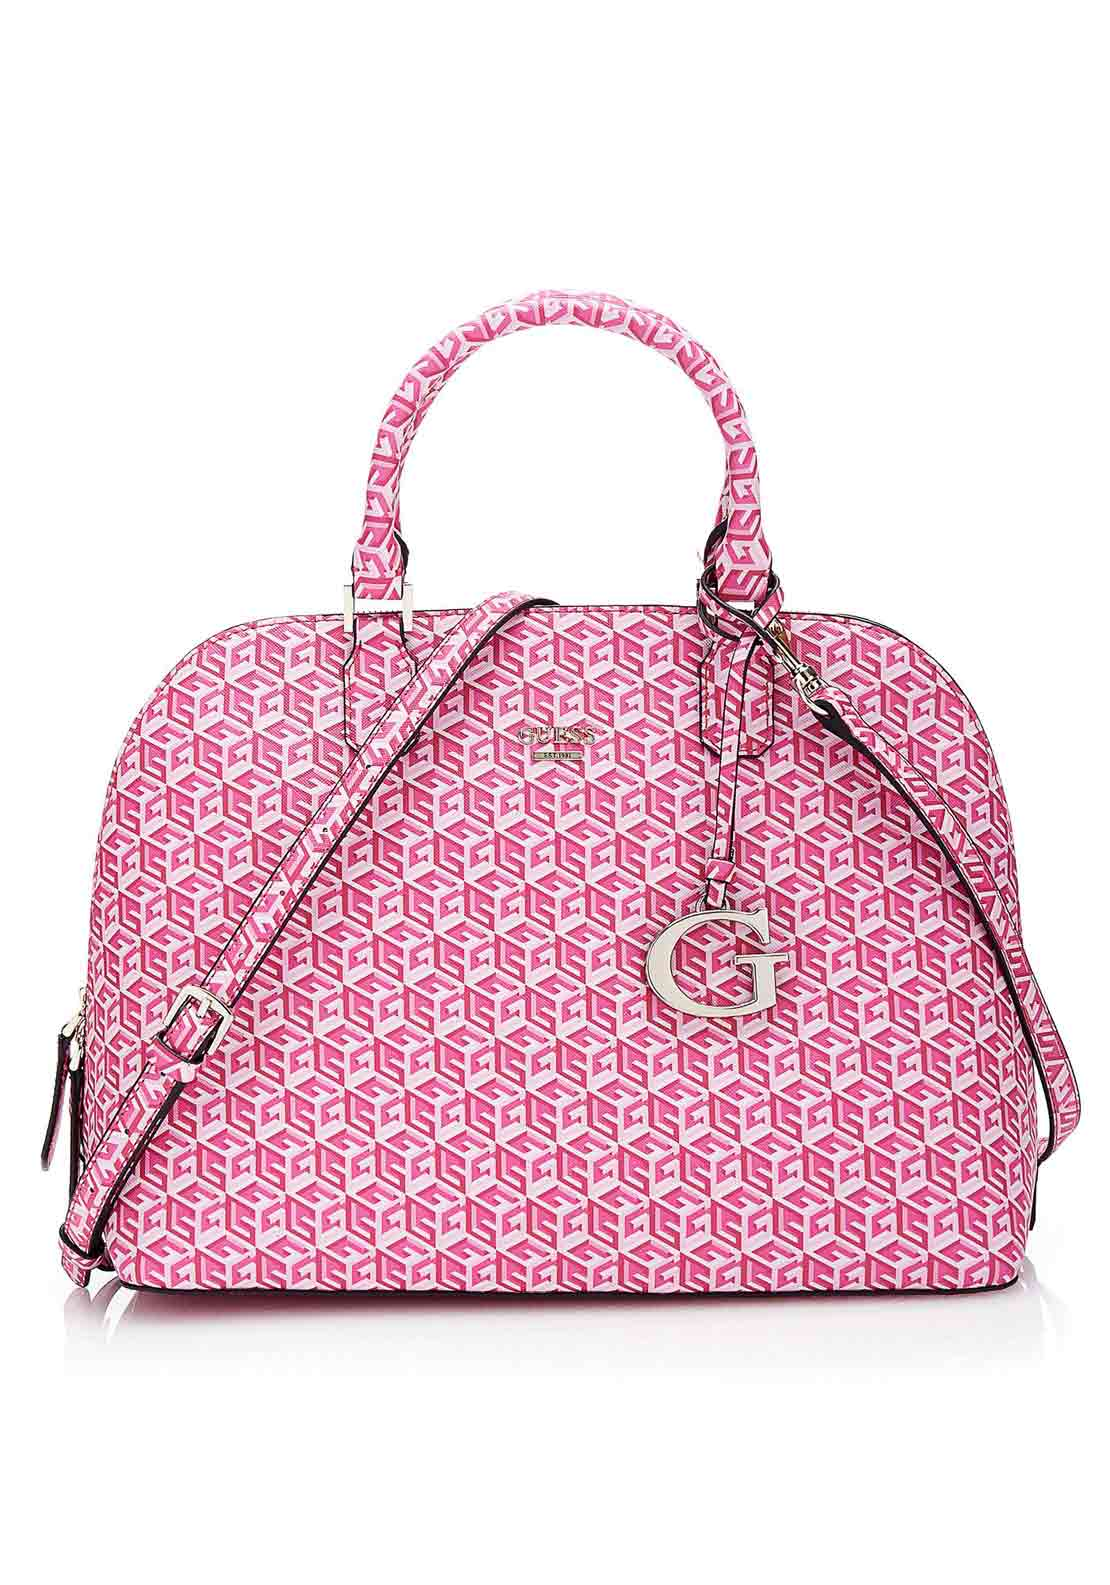 Guess Womens Cube Dome Satchel, Cherry Pink